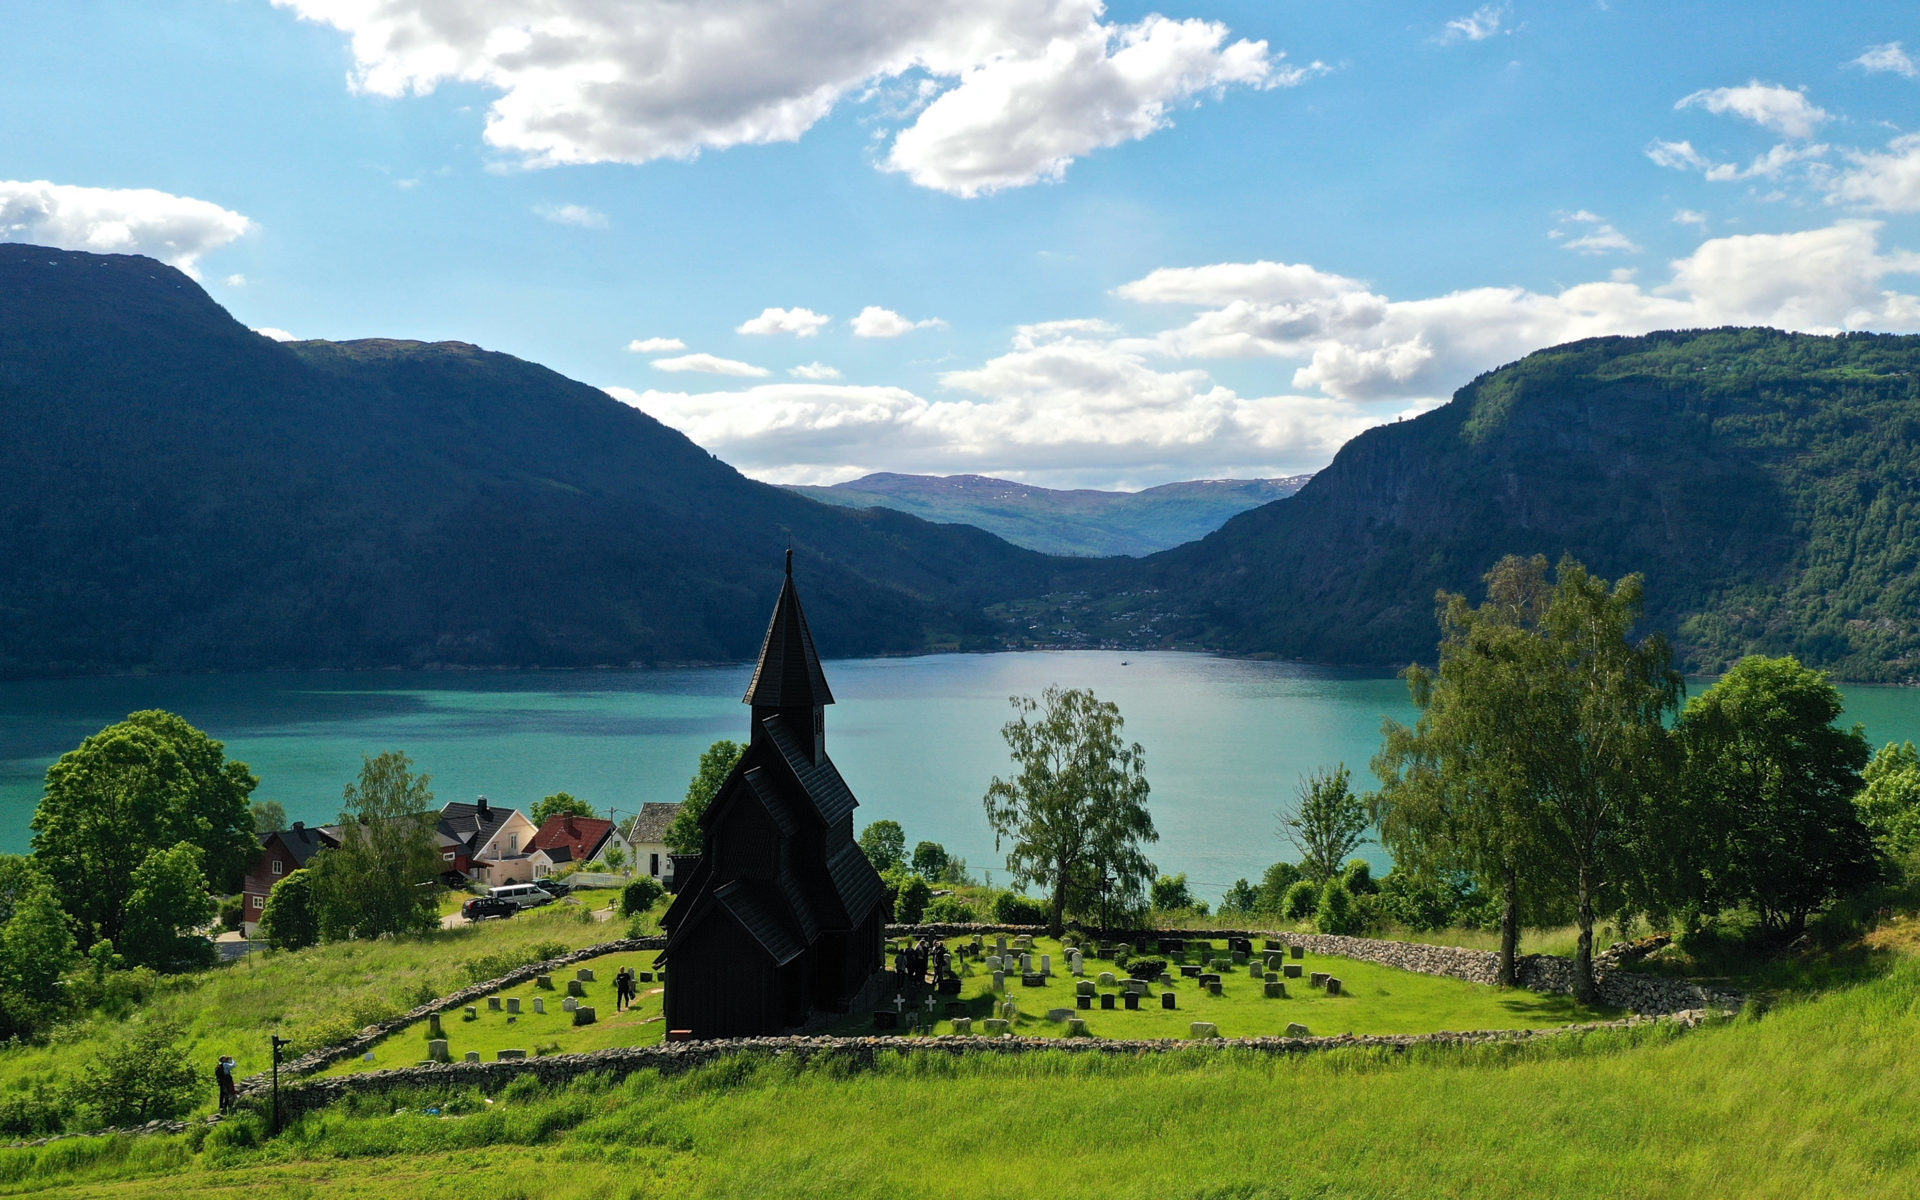 The UNESCO Protected Urnes Stave Church in Luster, Norway